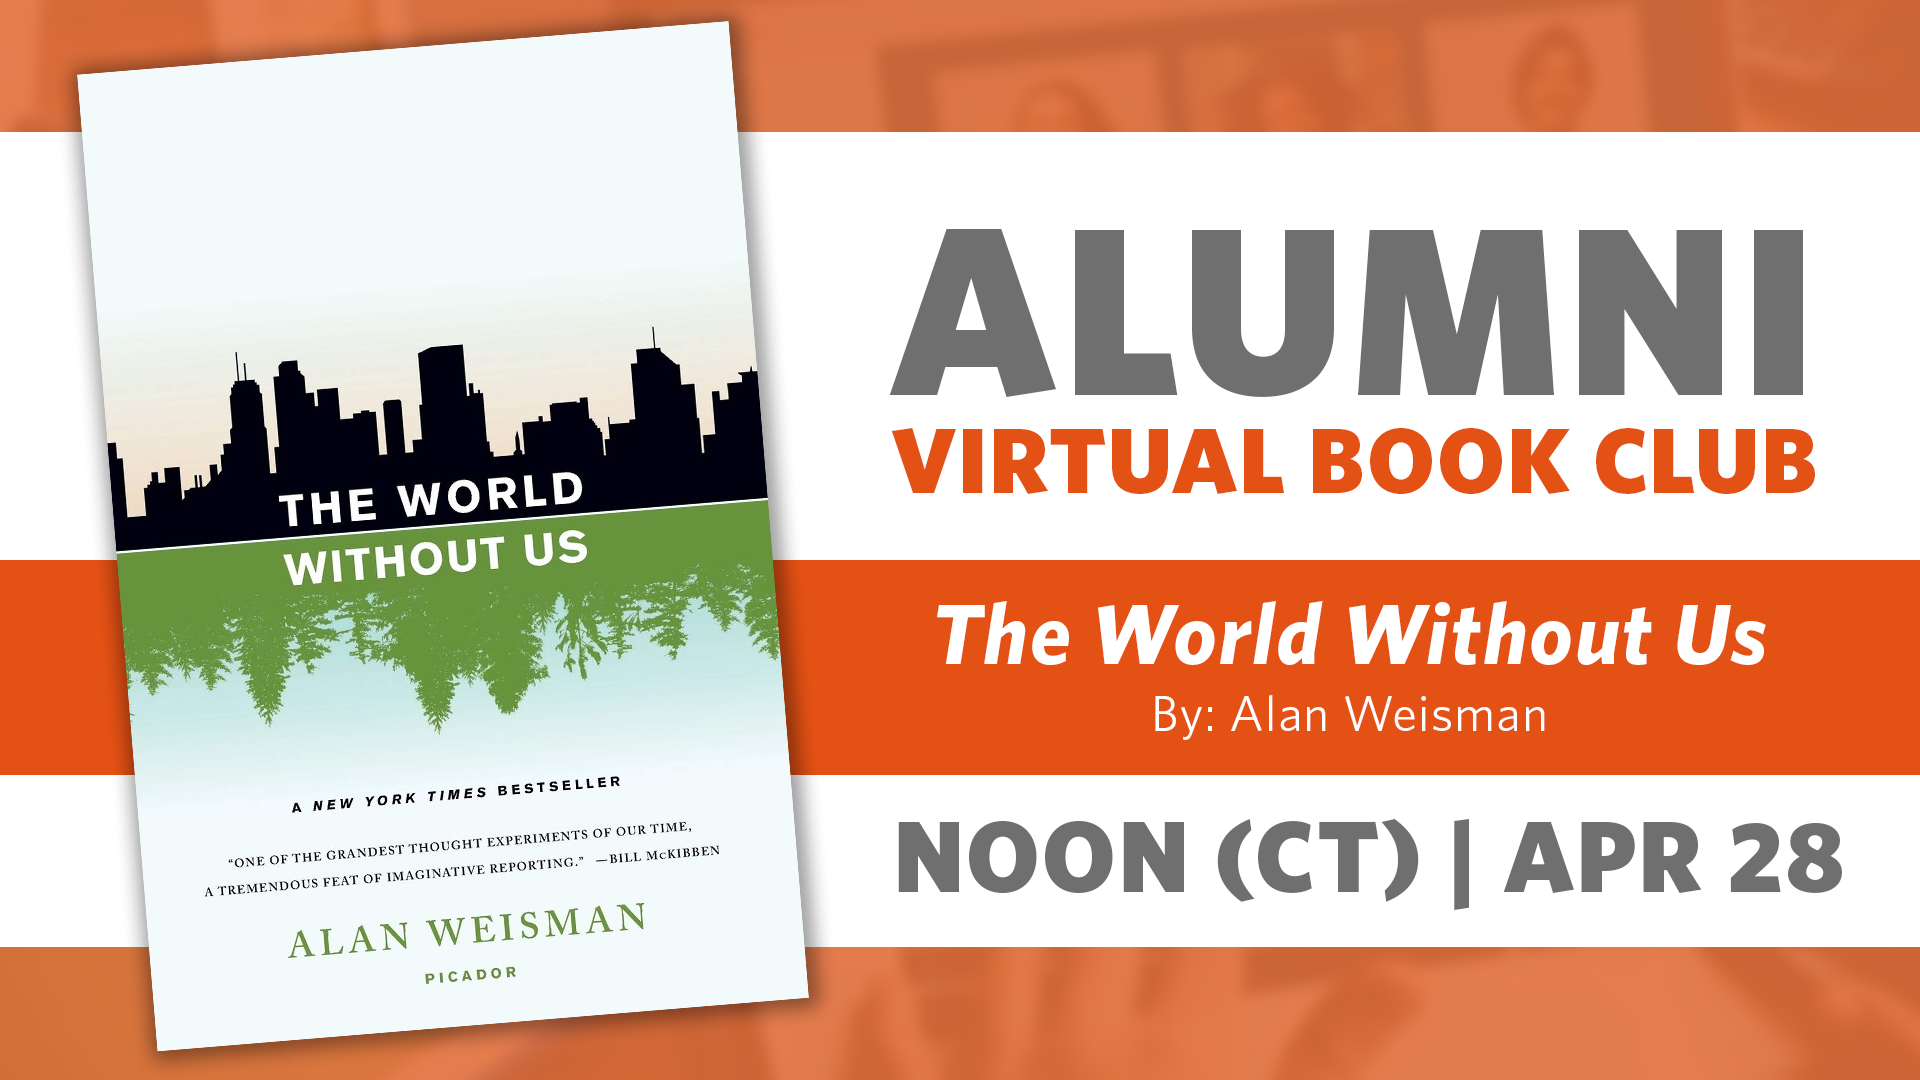 Alumni Book Club Meeting: The World Without Us